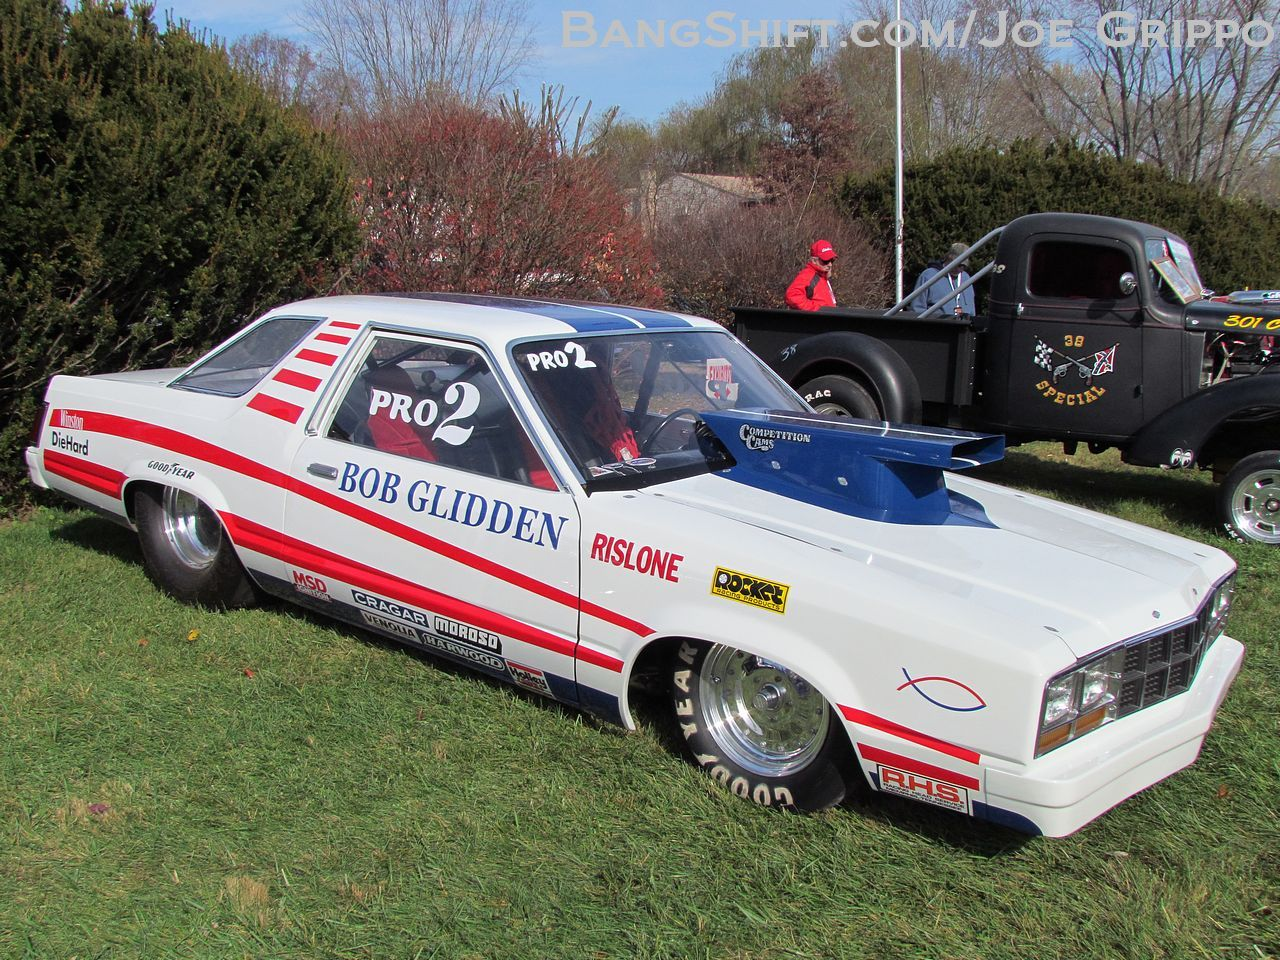 Bob glidden s fairmont is the car i first saw that made me want toi hot rod a 78 fairmont futura a lot of people don t realize these were on the same fox